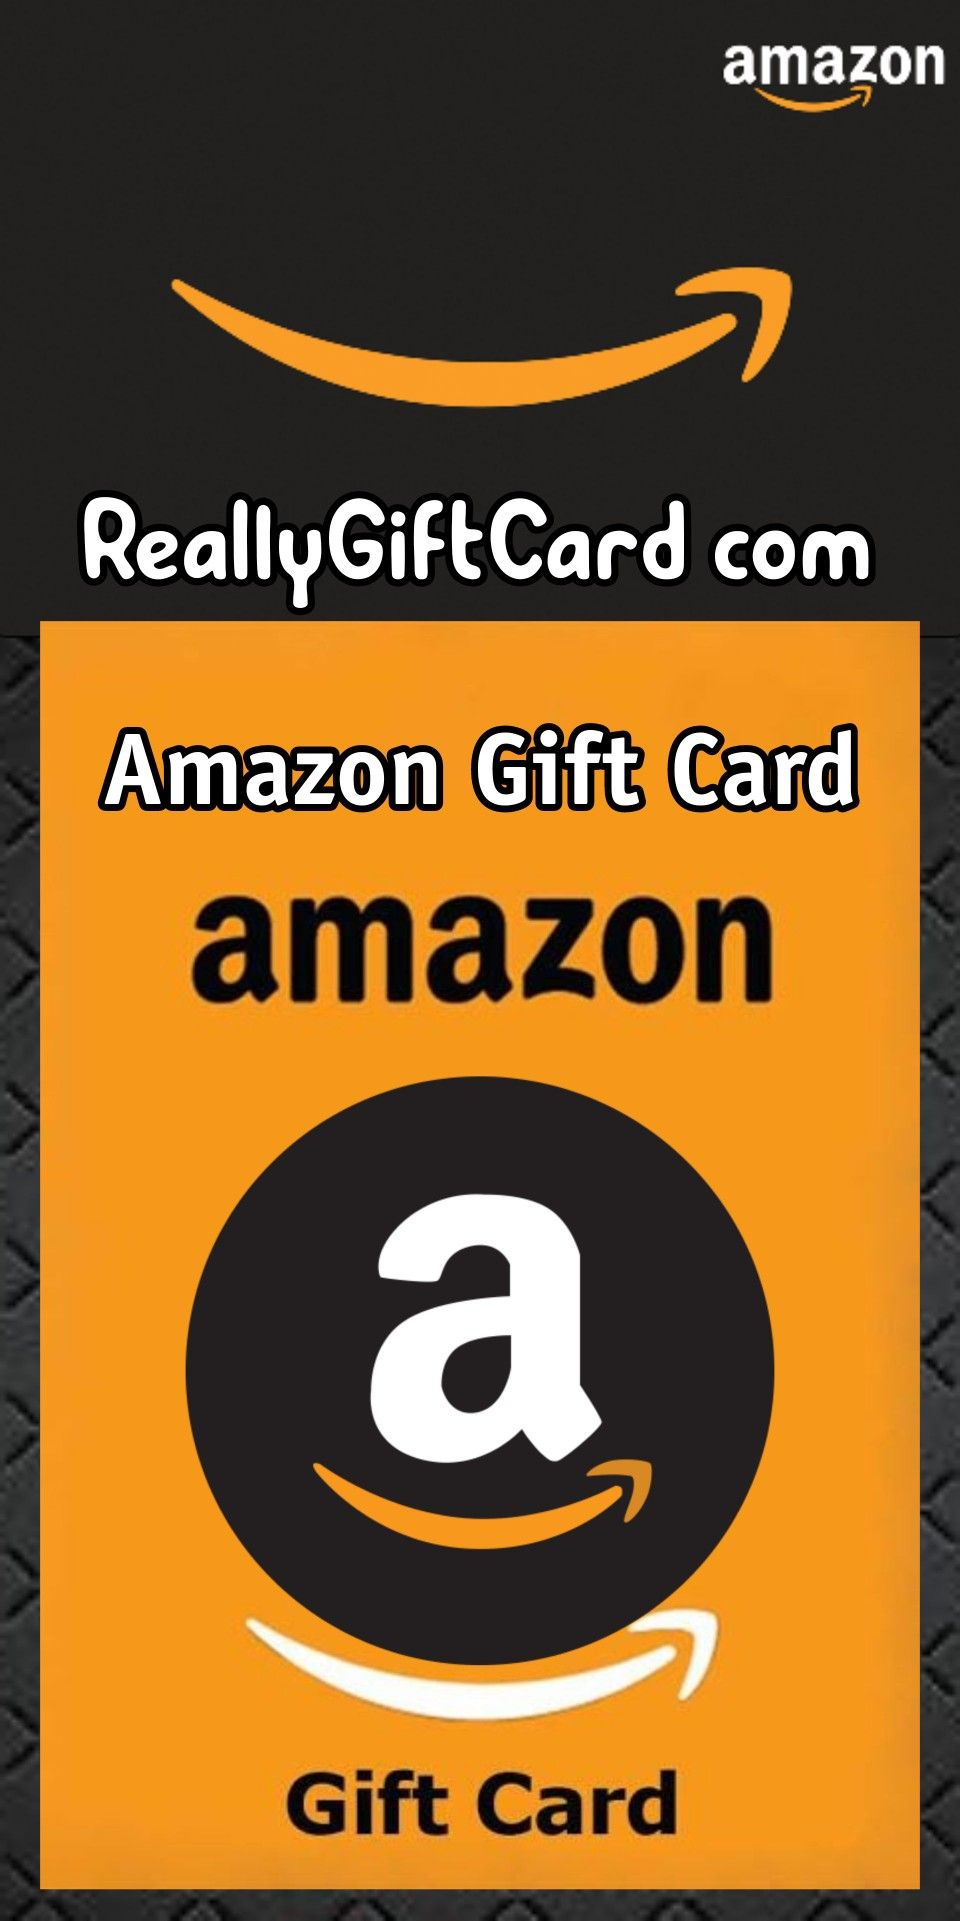 Hack Free Amazon Gift Card Codes List 2021 In 2021 Amazon Gift Card Free Amazon Gift Cards Amazon Gifts